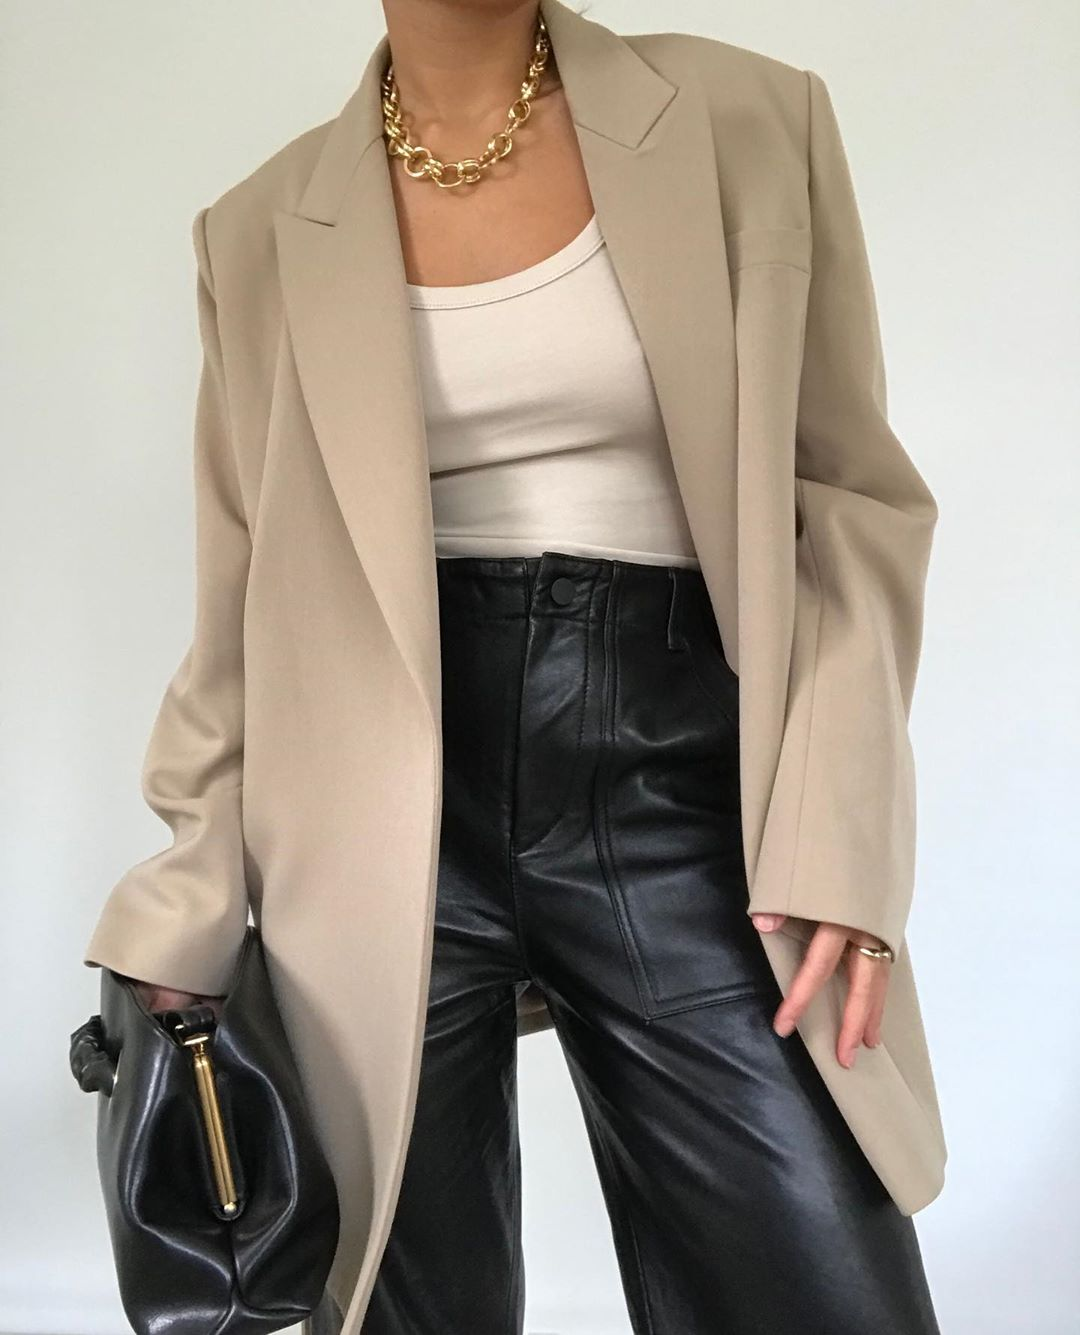 Minimalist Spring Outfit Idea: oversized beige blazer, a chunky chain necklace, off-white tank top, black pouch clutch, and black leather pants.